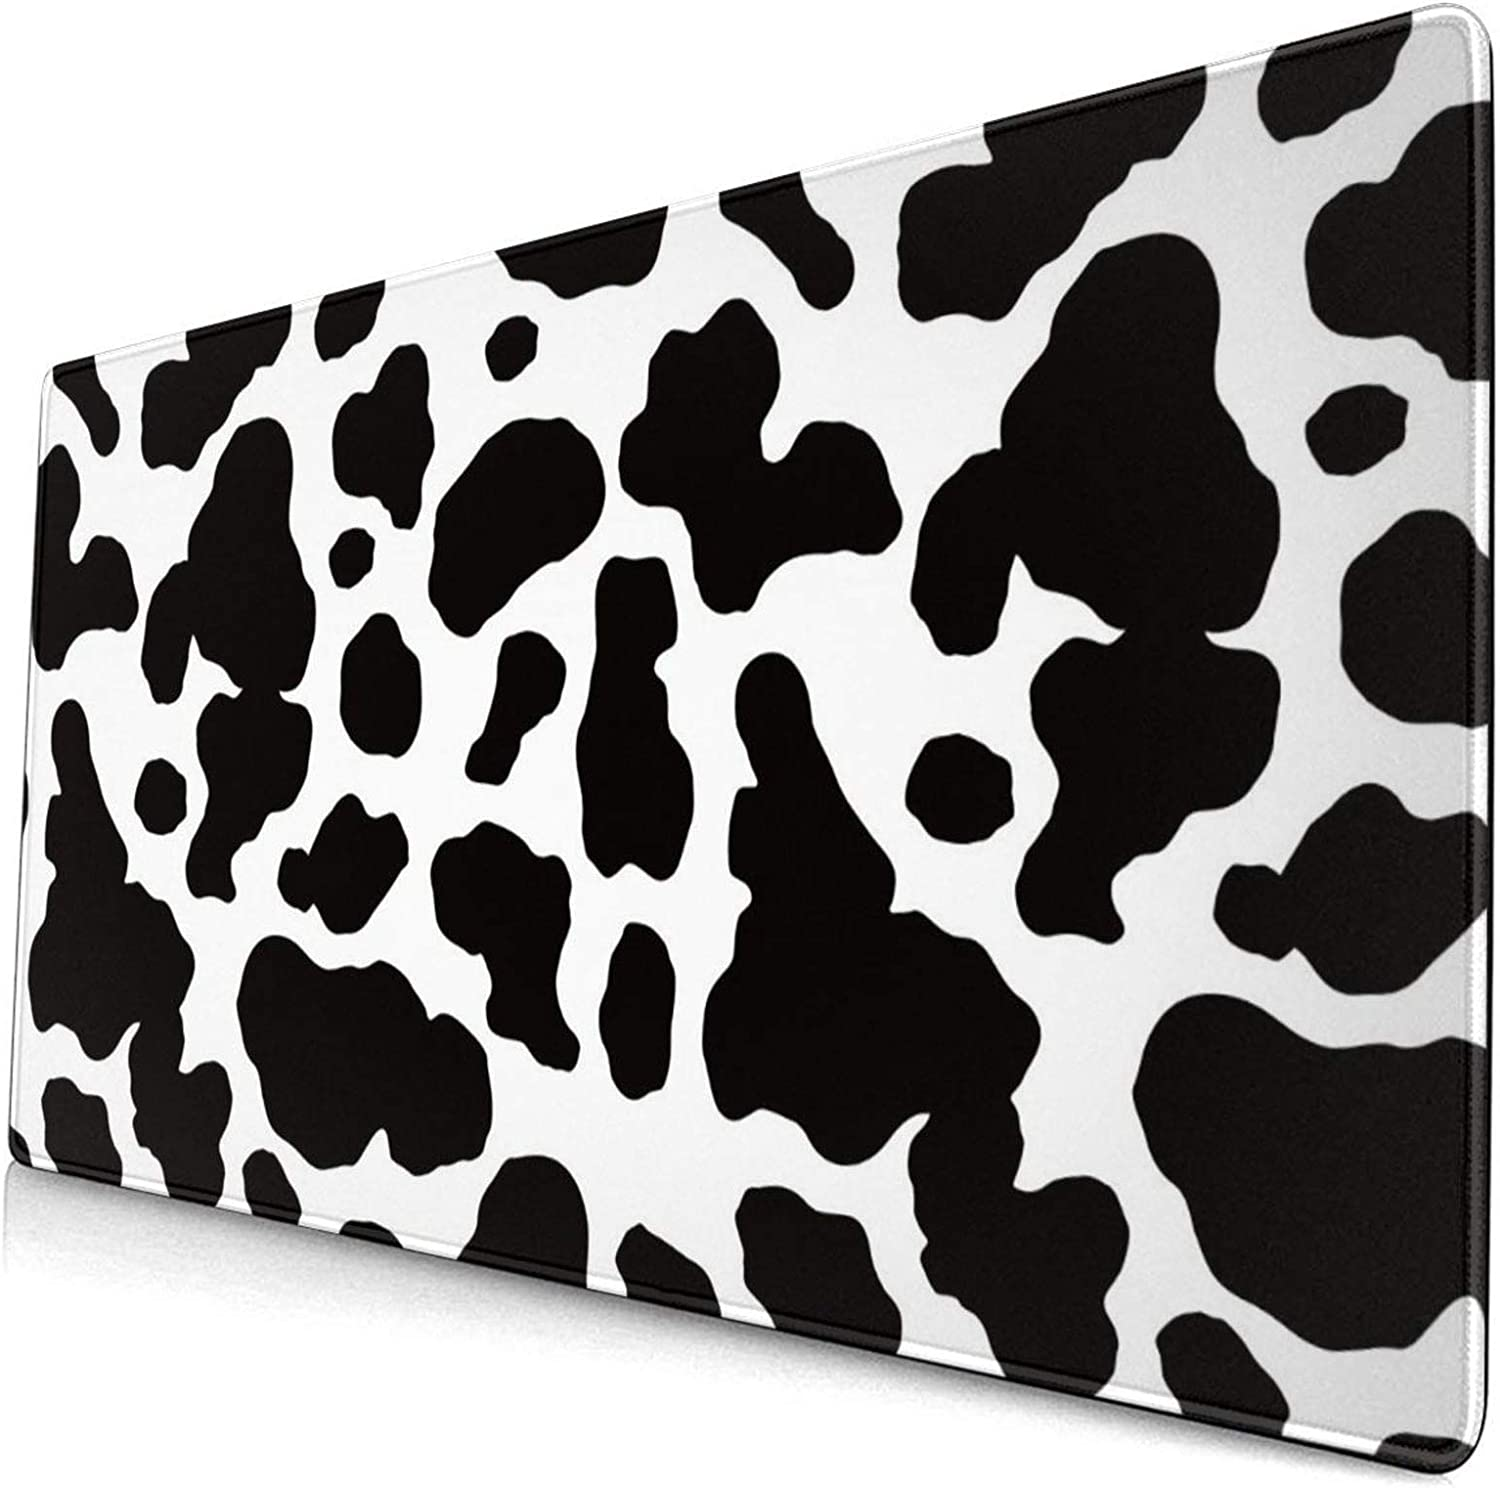 King Dare Great interest Cow Print Large Deluxe Mouse Exteneded Desk Gaming Pad